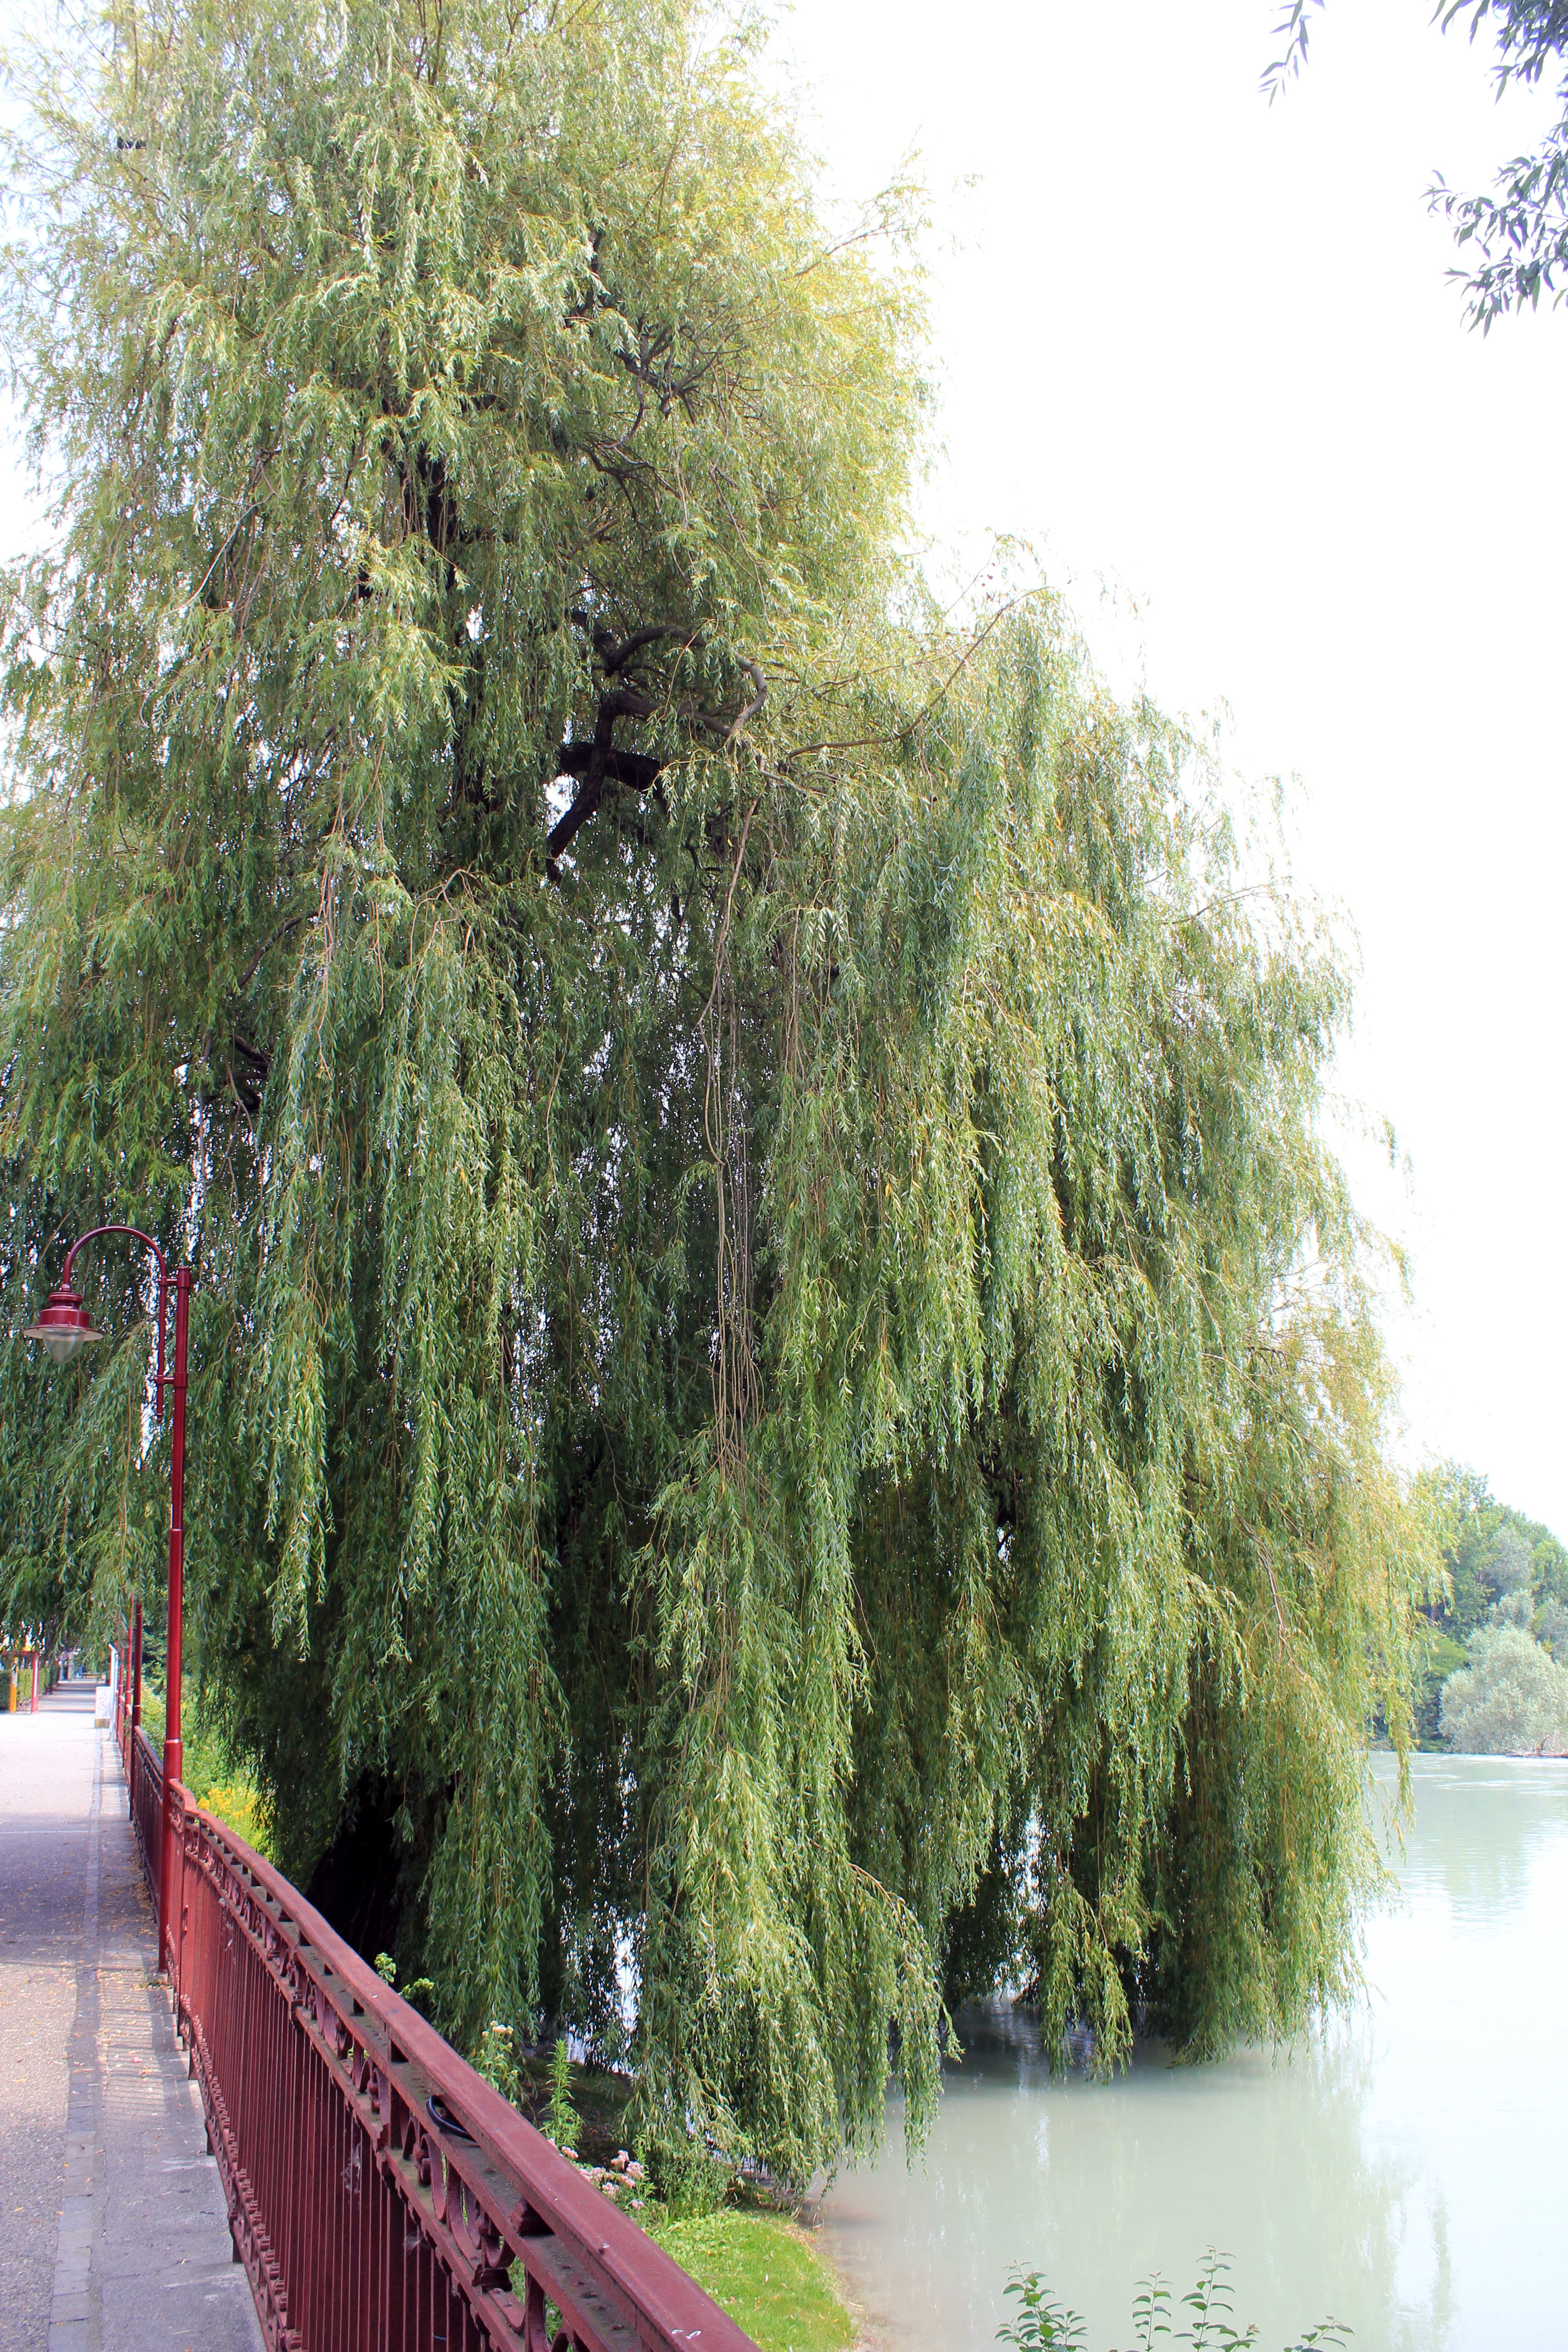 of Salice Piangente, weeping willow, Willow